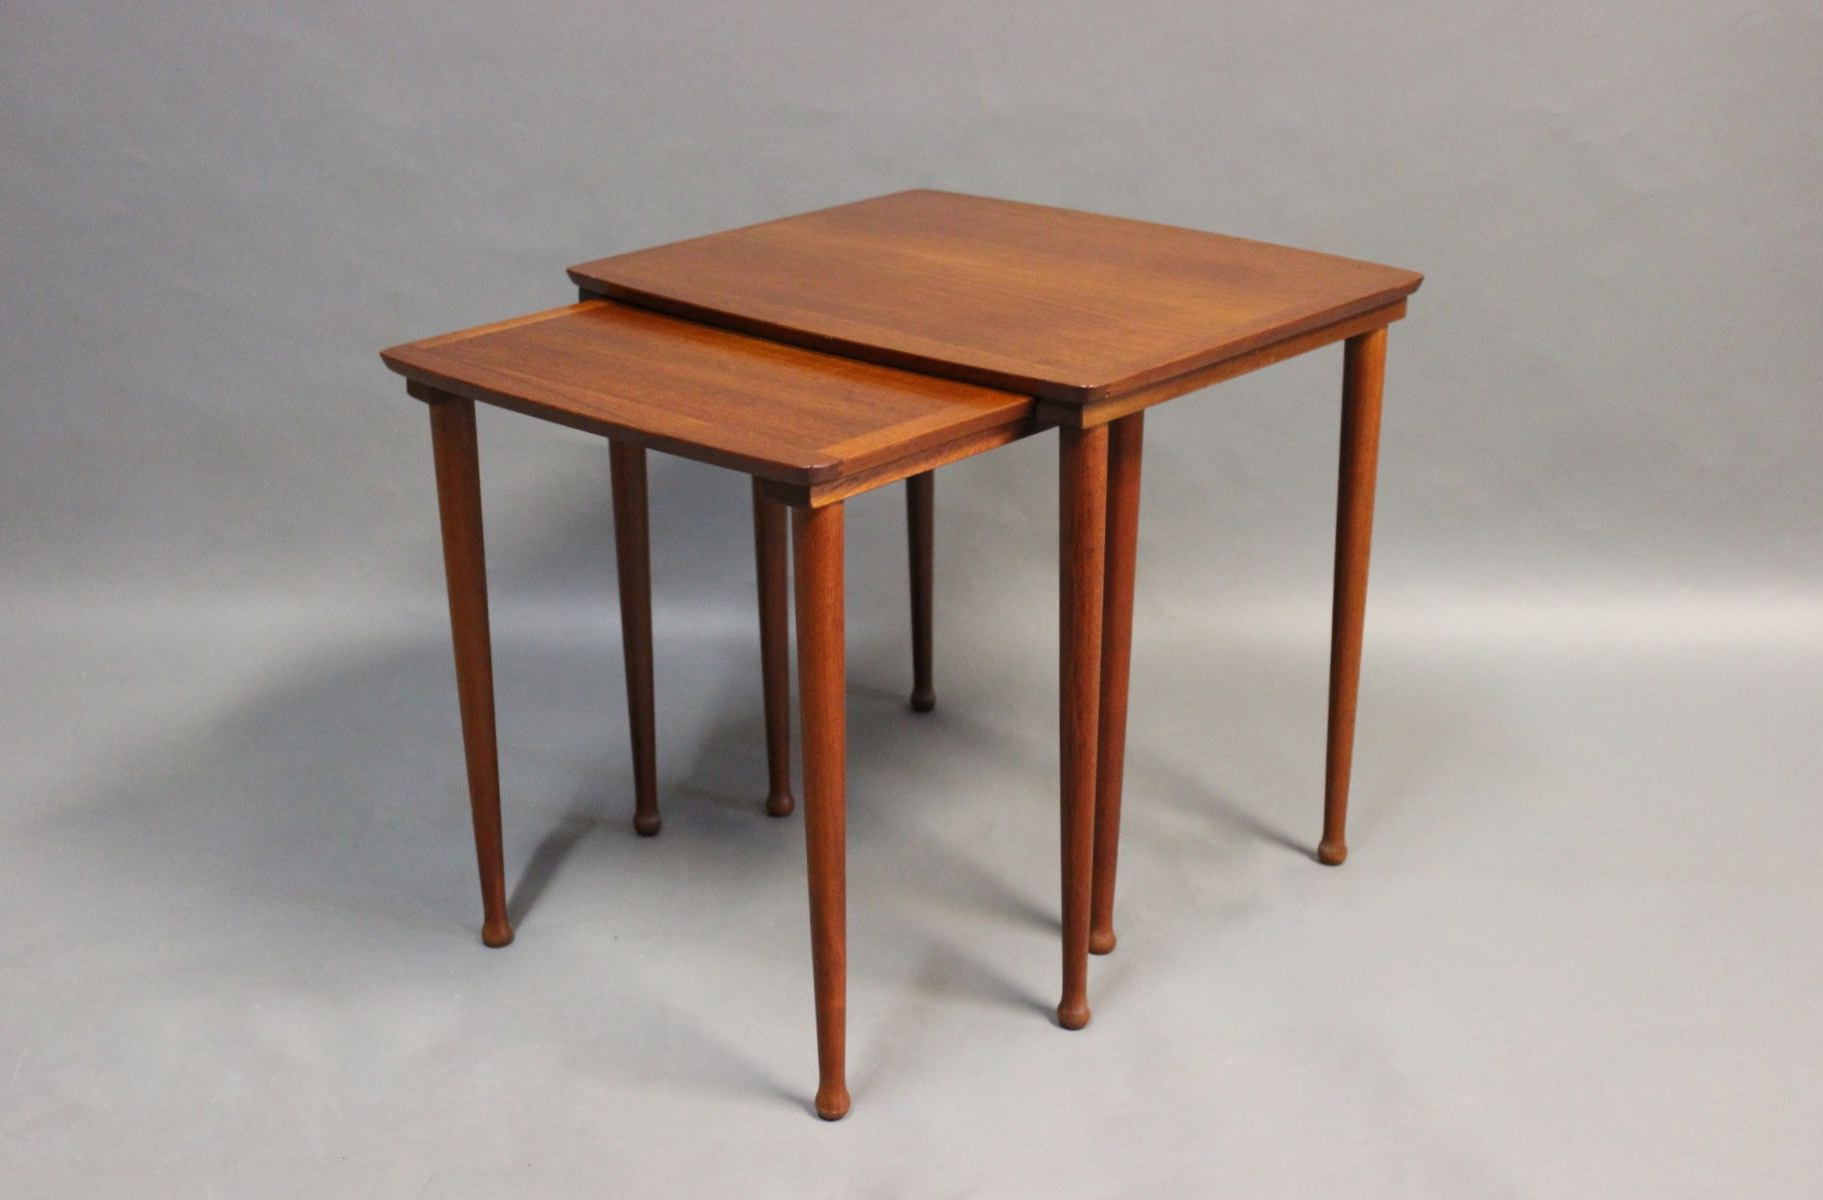 Teak Nesting Tables From Møbelintarsia, 1960S For Sale At Pamono Regarding Intarsia Console Tables (View 16 of 20)